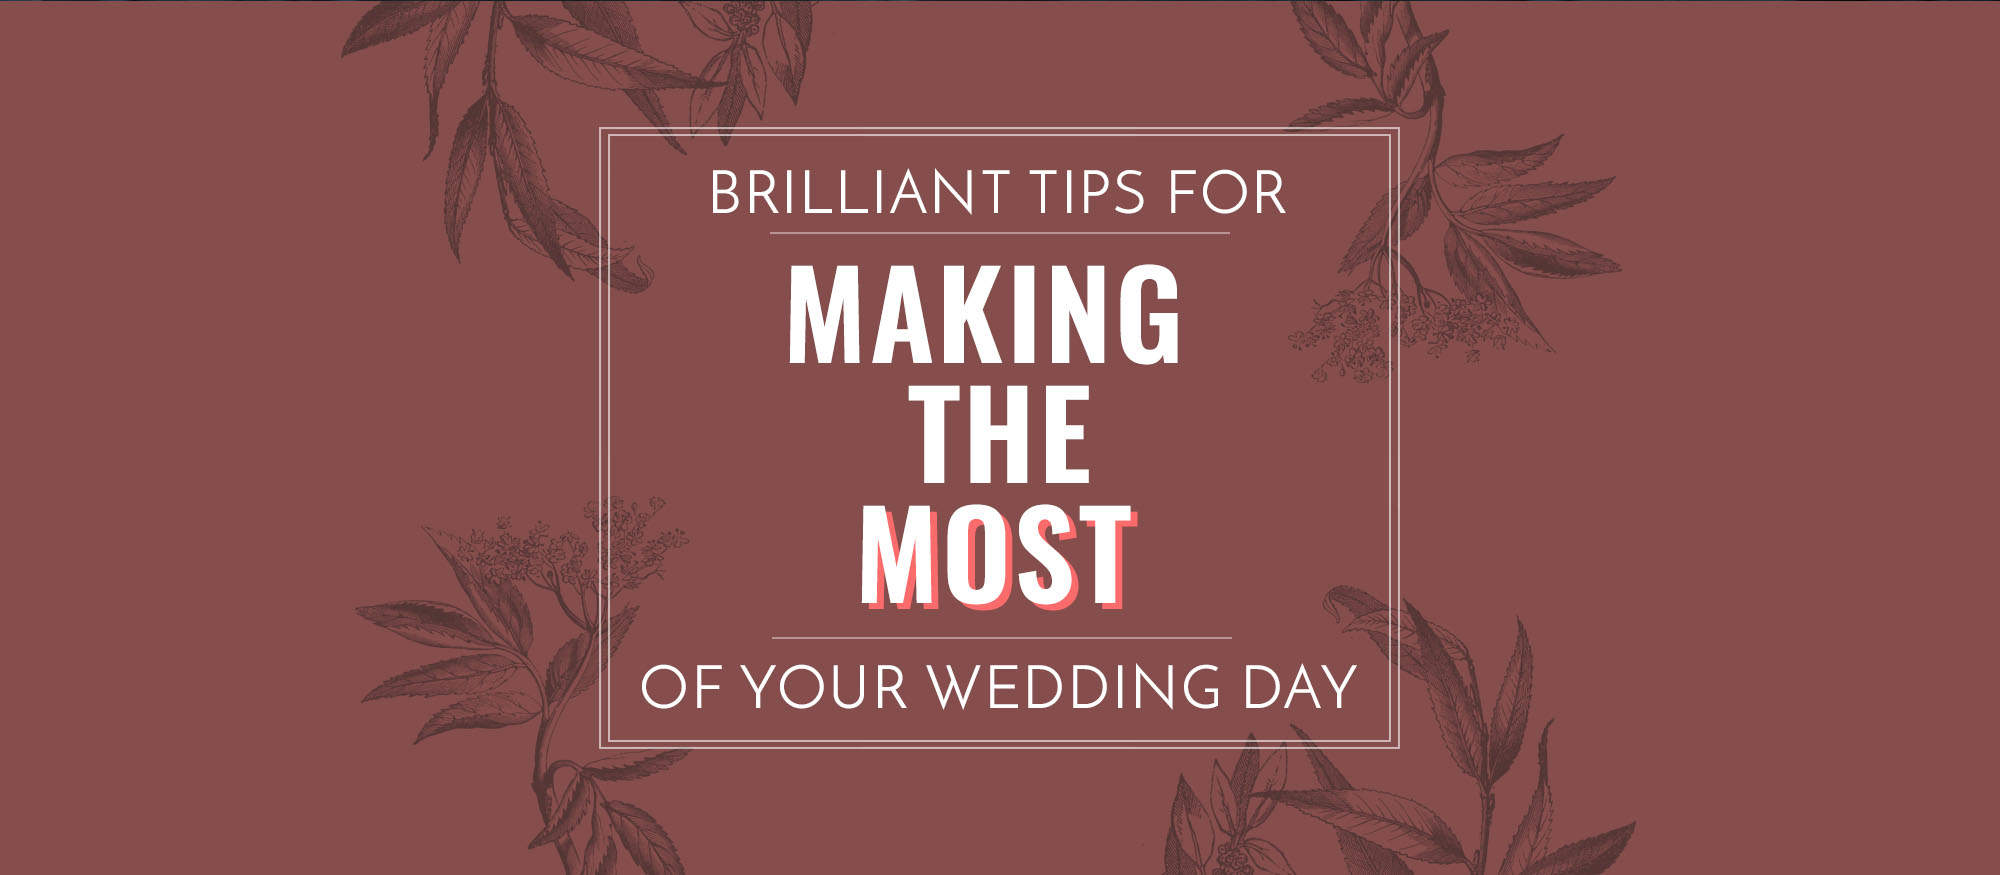 Make-the-most-of-your-wedding